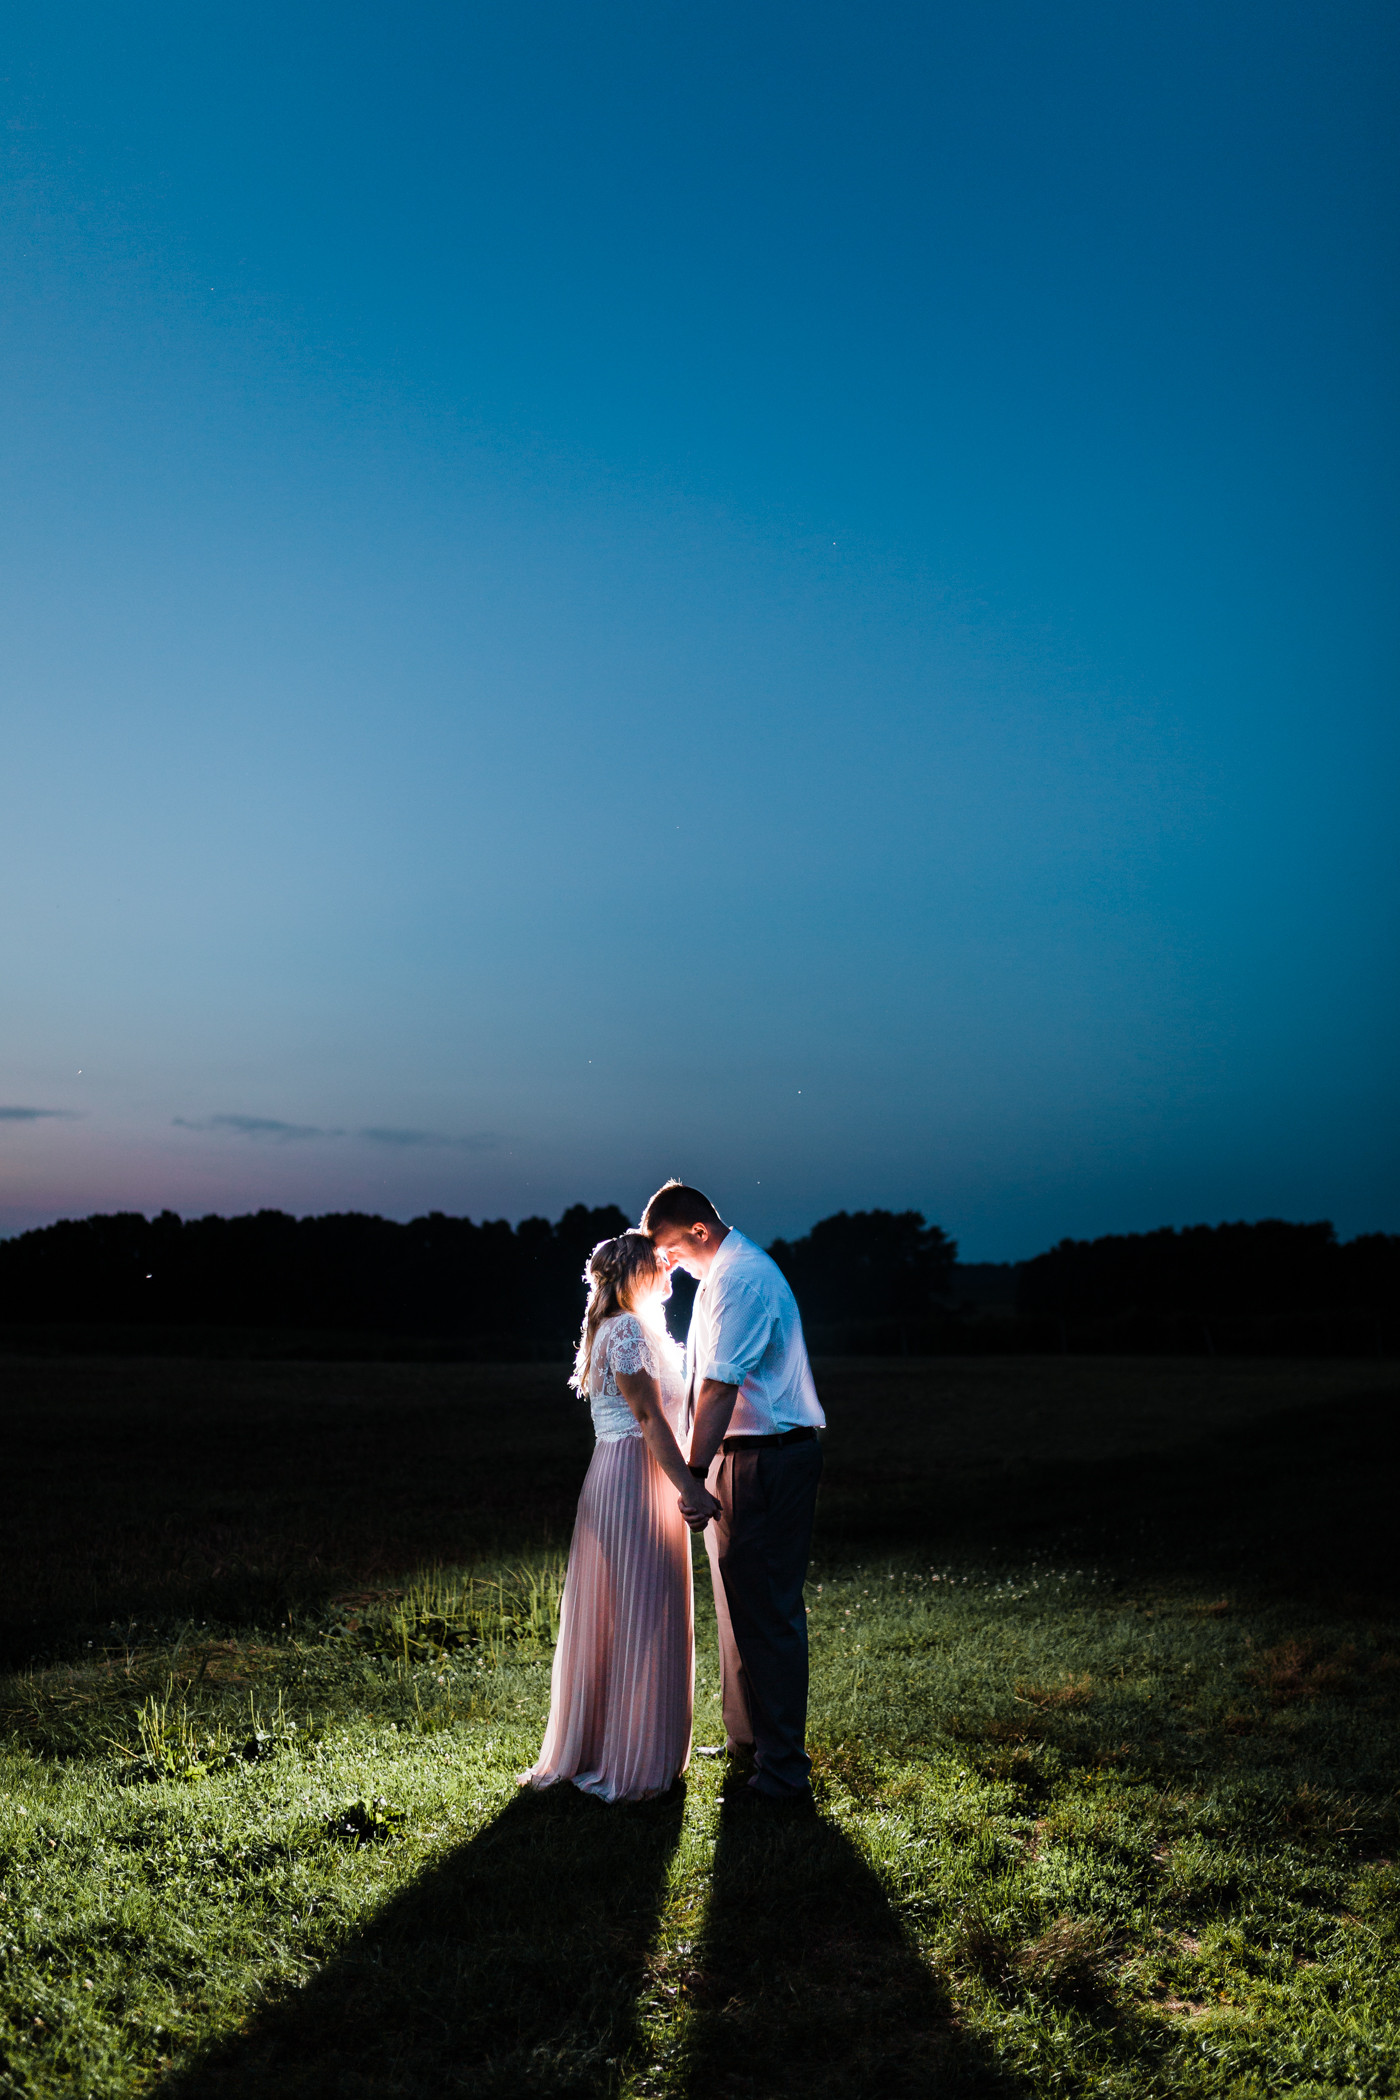 romantic night photo of bride and groom during engagement session